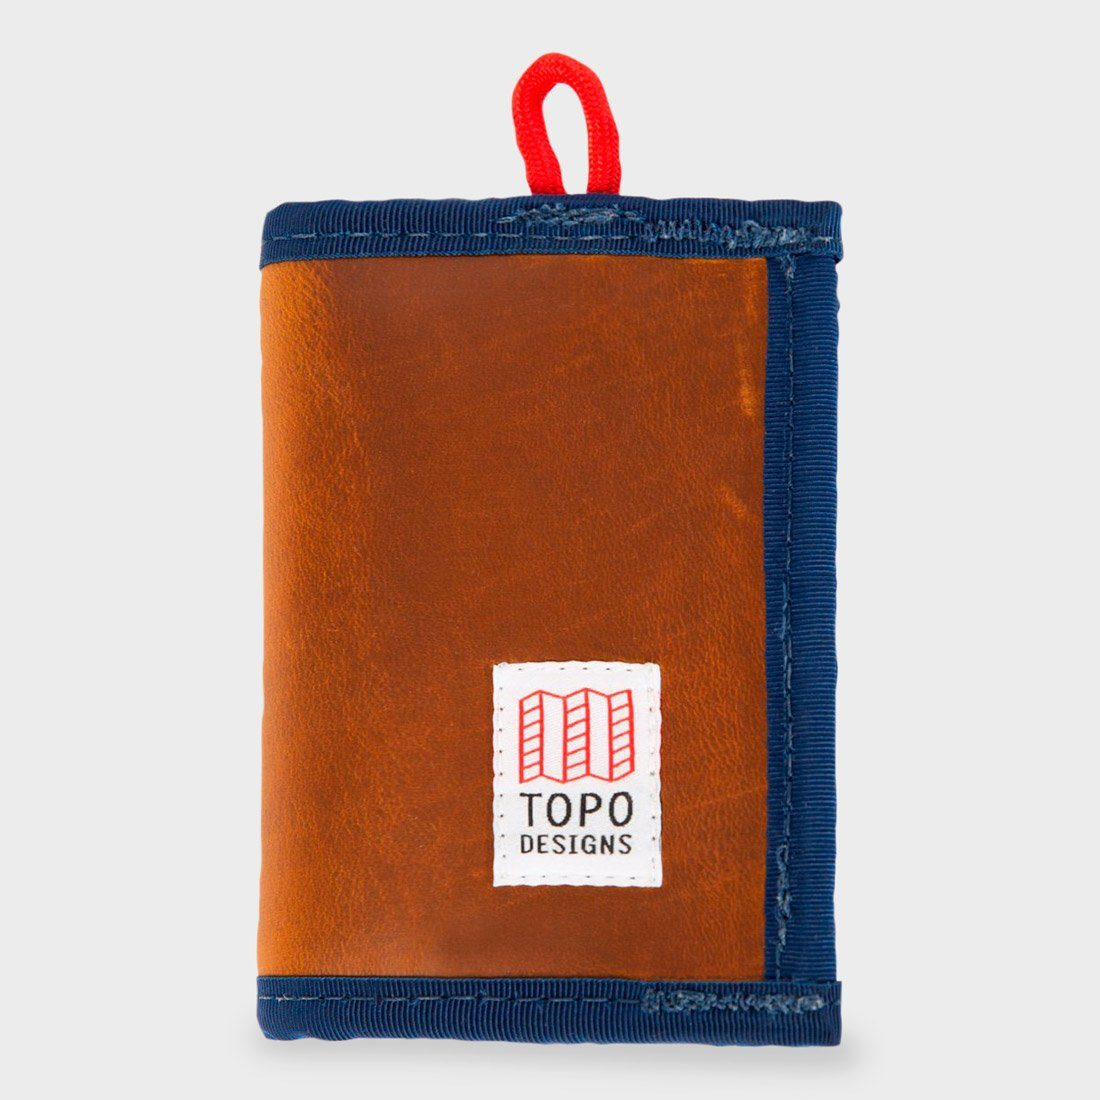 Topo Designs Leather Wallet Brown